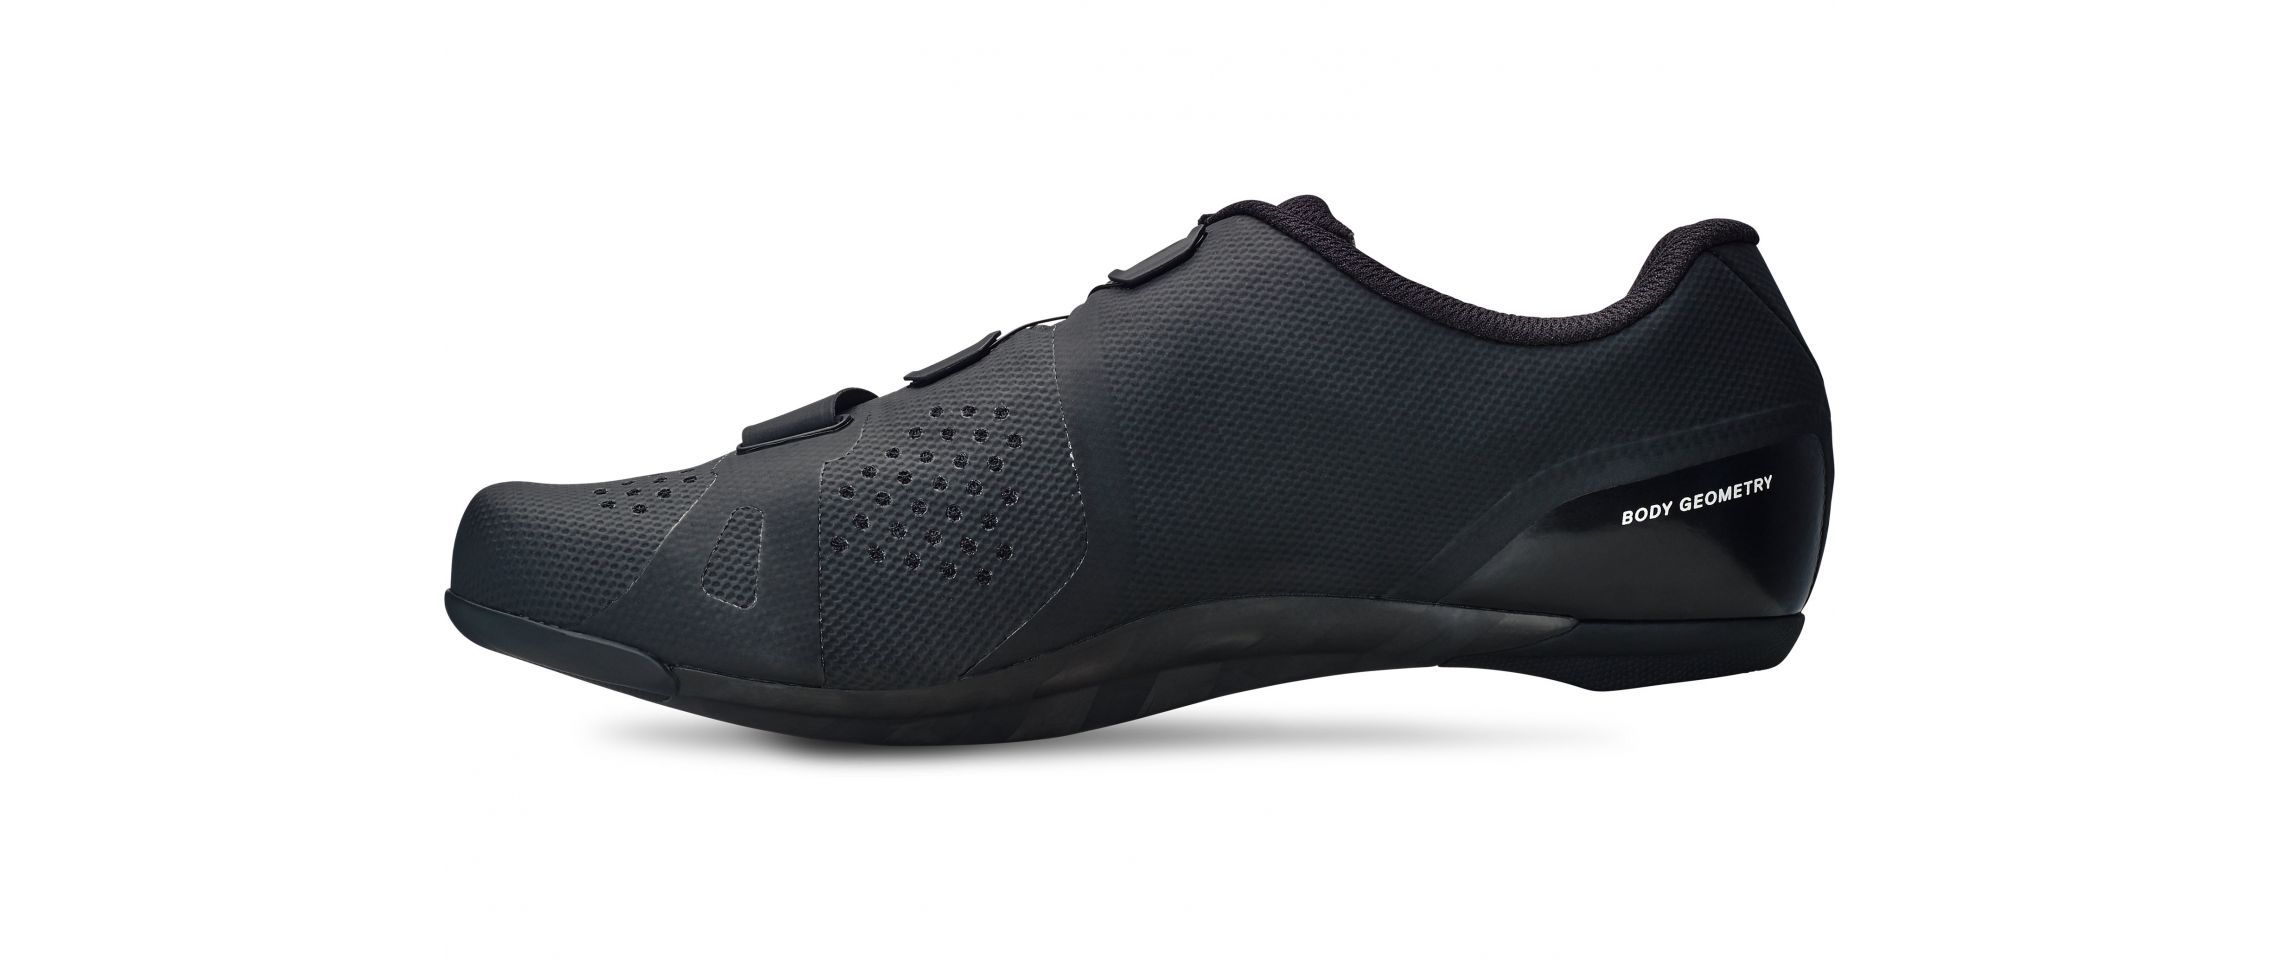 Torch 2.0 Road Shoe Specialized Black 1 IBKBike.com